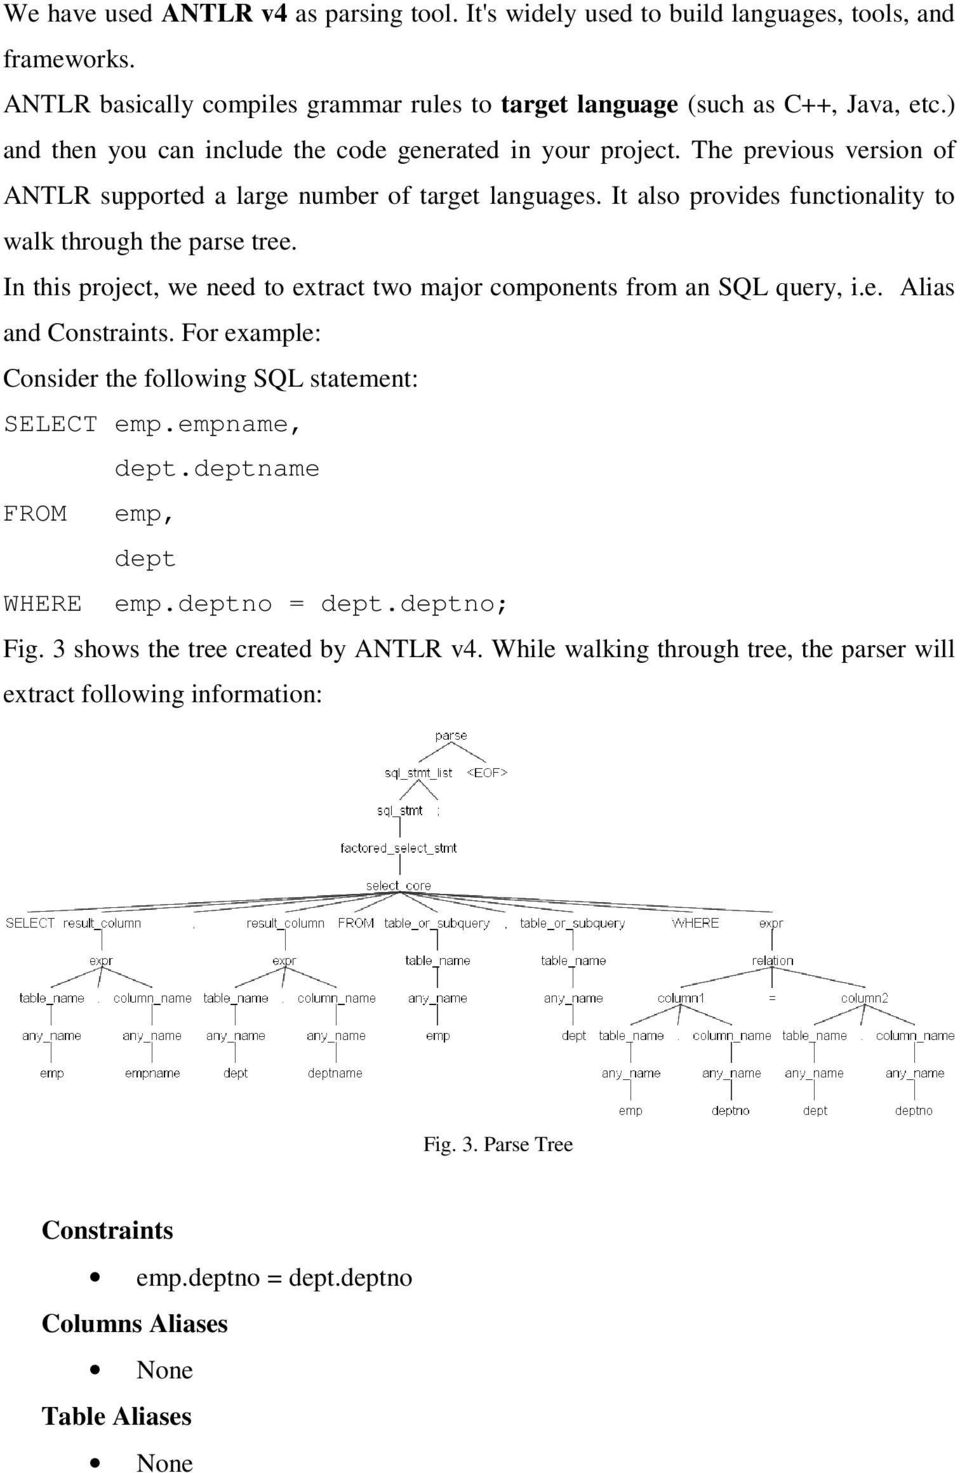 Deriving Application Level Relationships by Analysing the